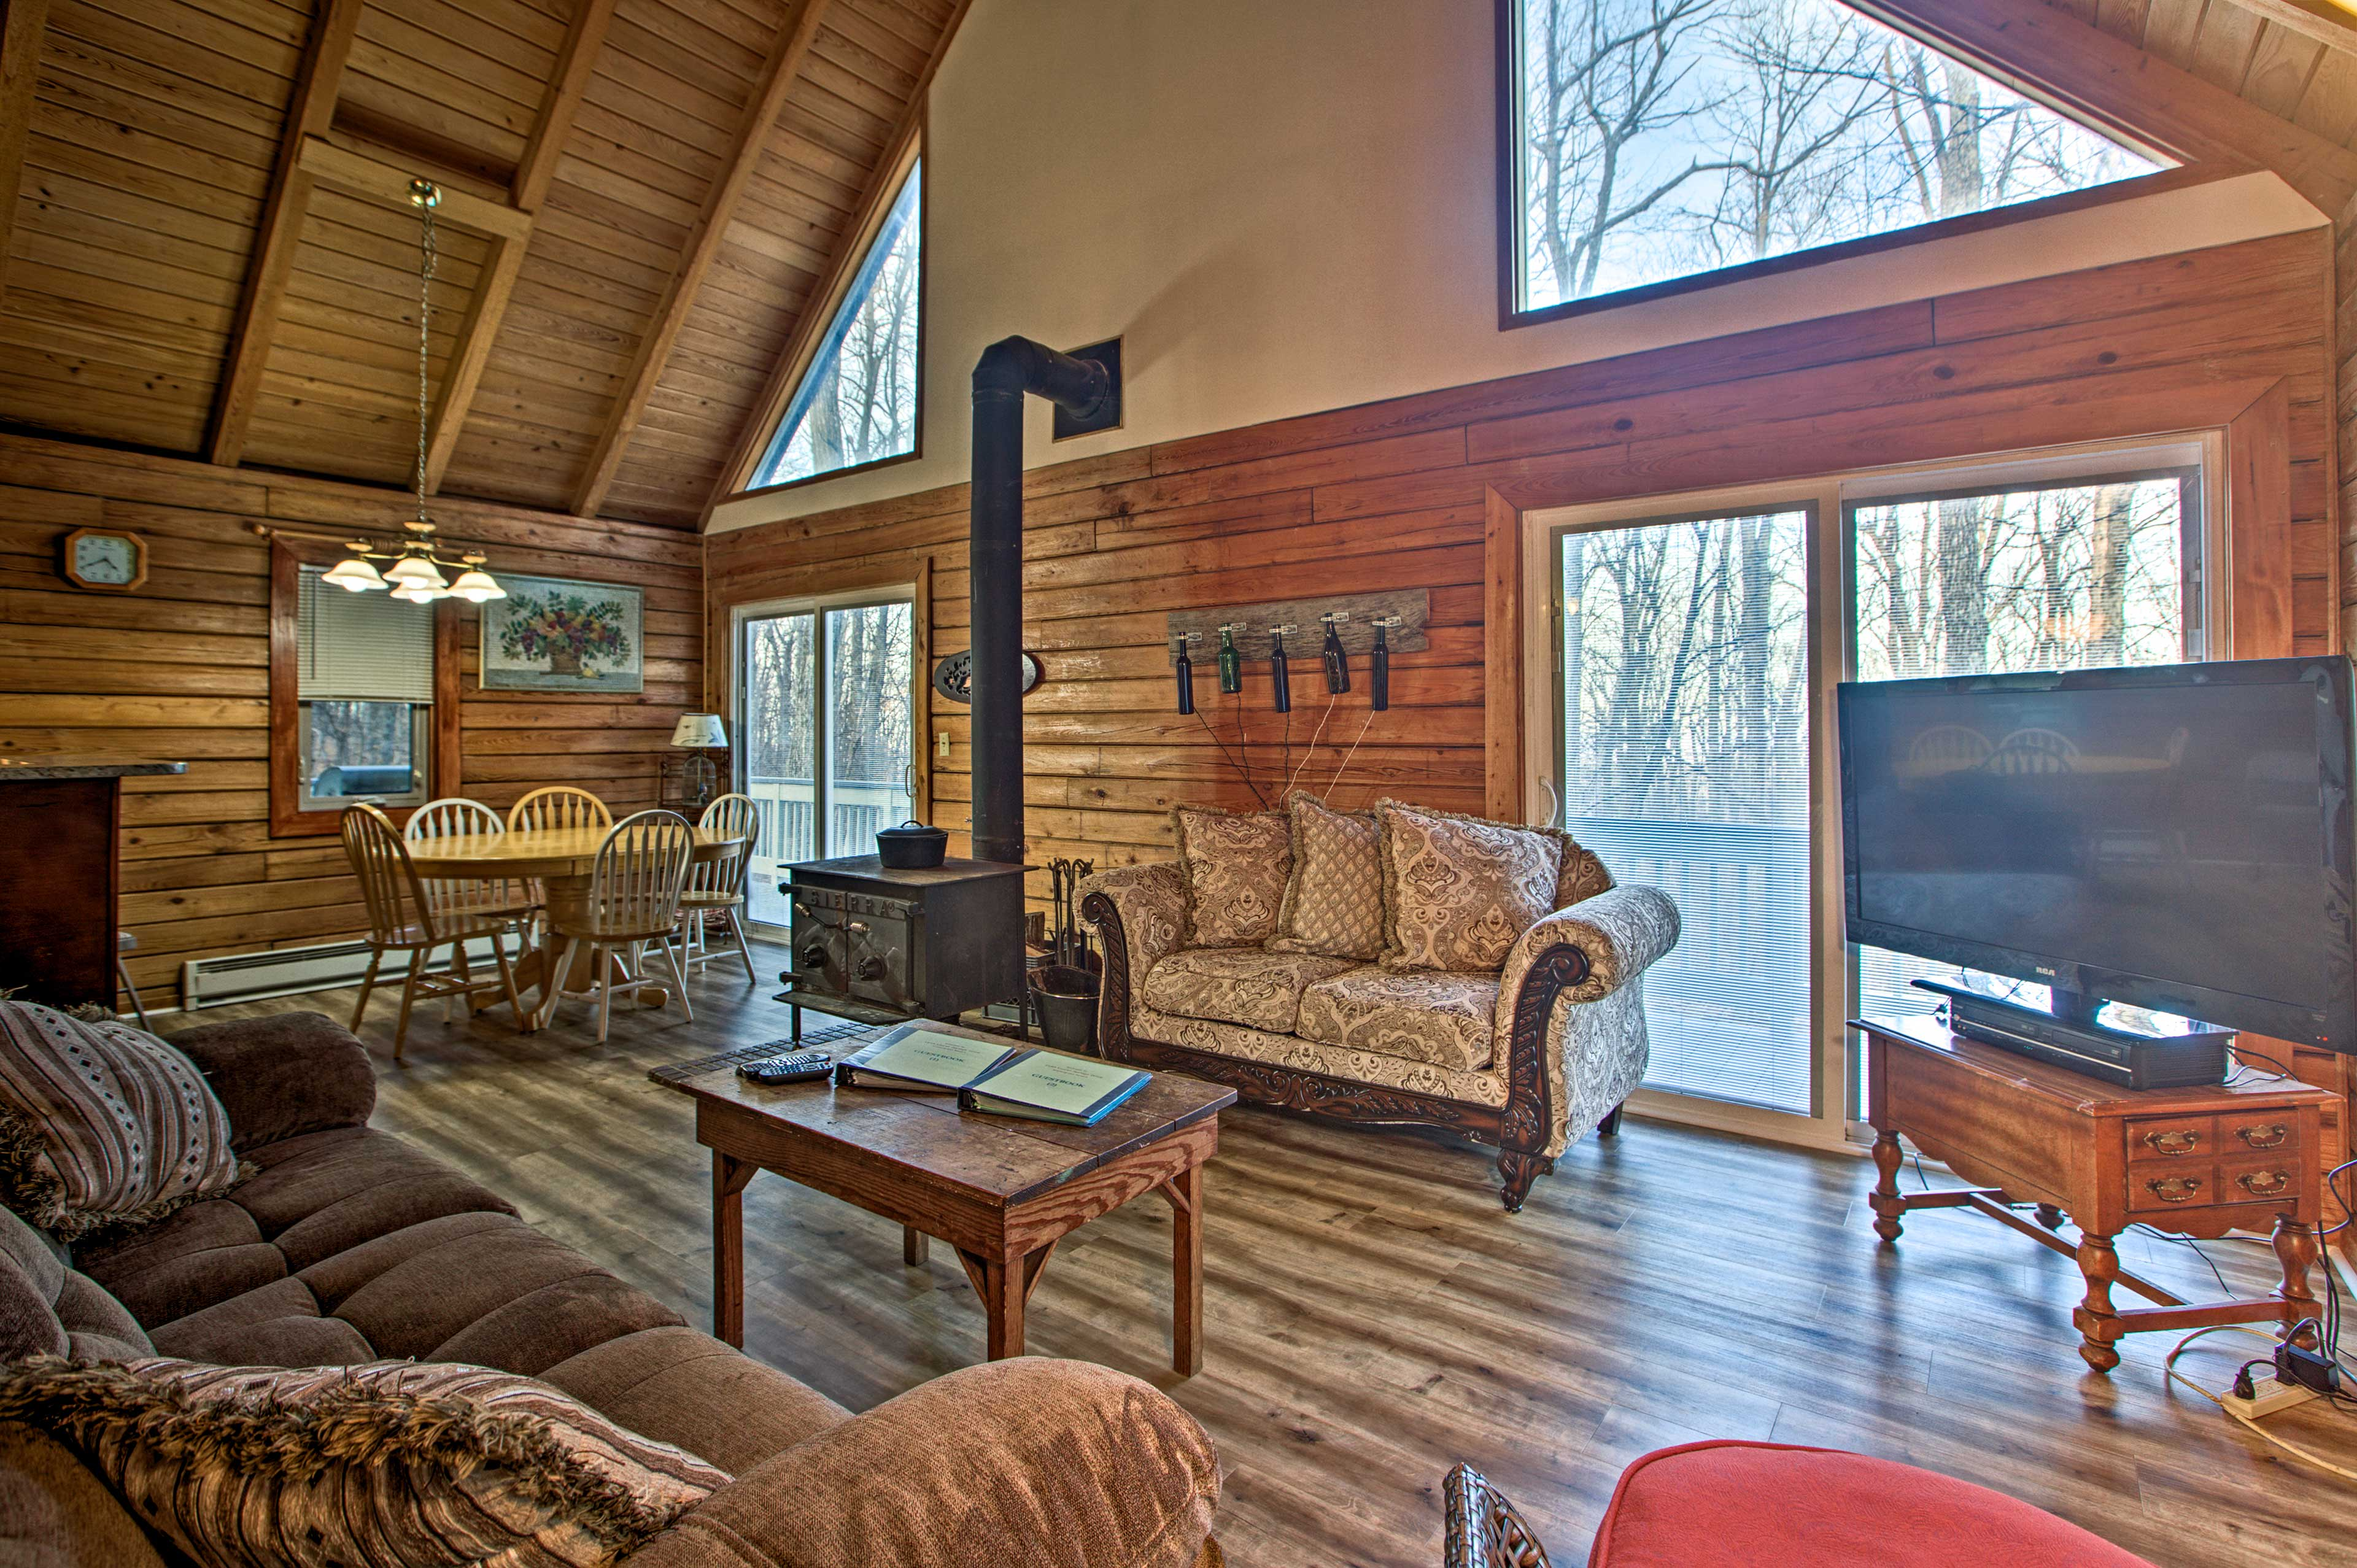 Wintergreen Vacation Rental   3BR   2BA   1,500 Sq Ft   Steps Required